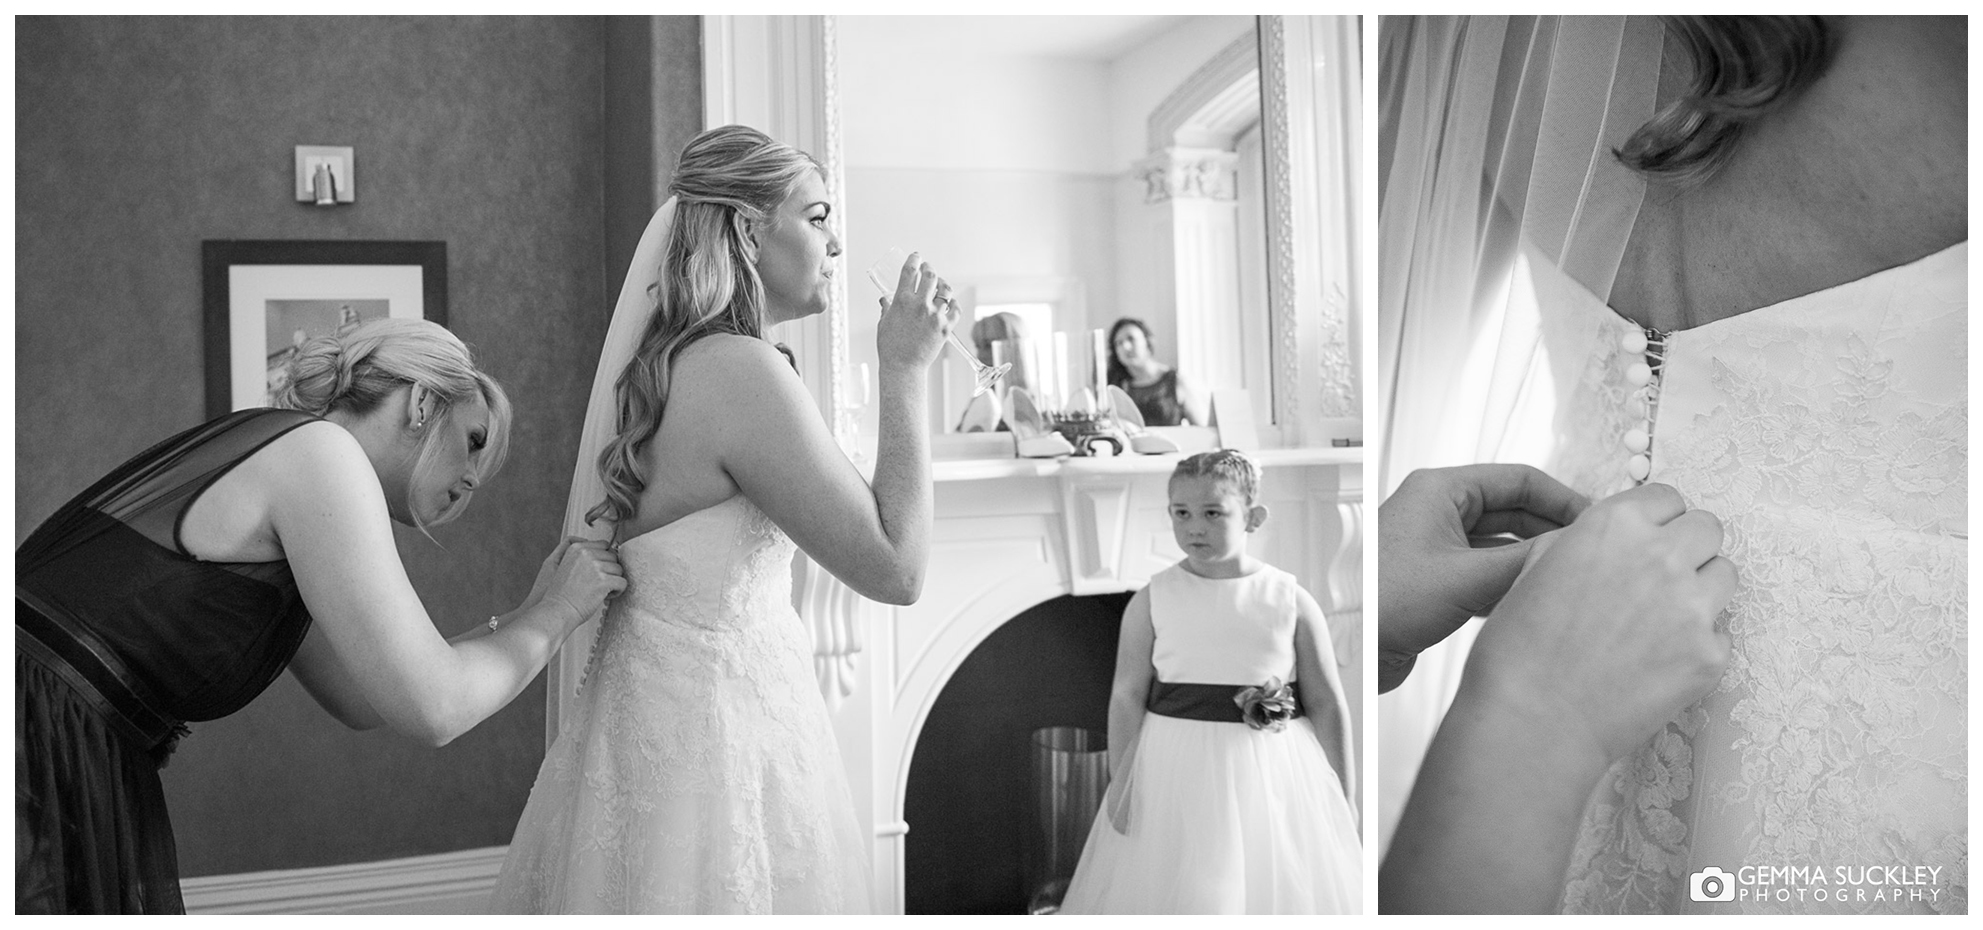 bridal-prep-at-the-yorkshire-hotel-harrogate-©gemmasuckleyphotography.jpg